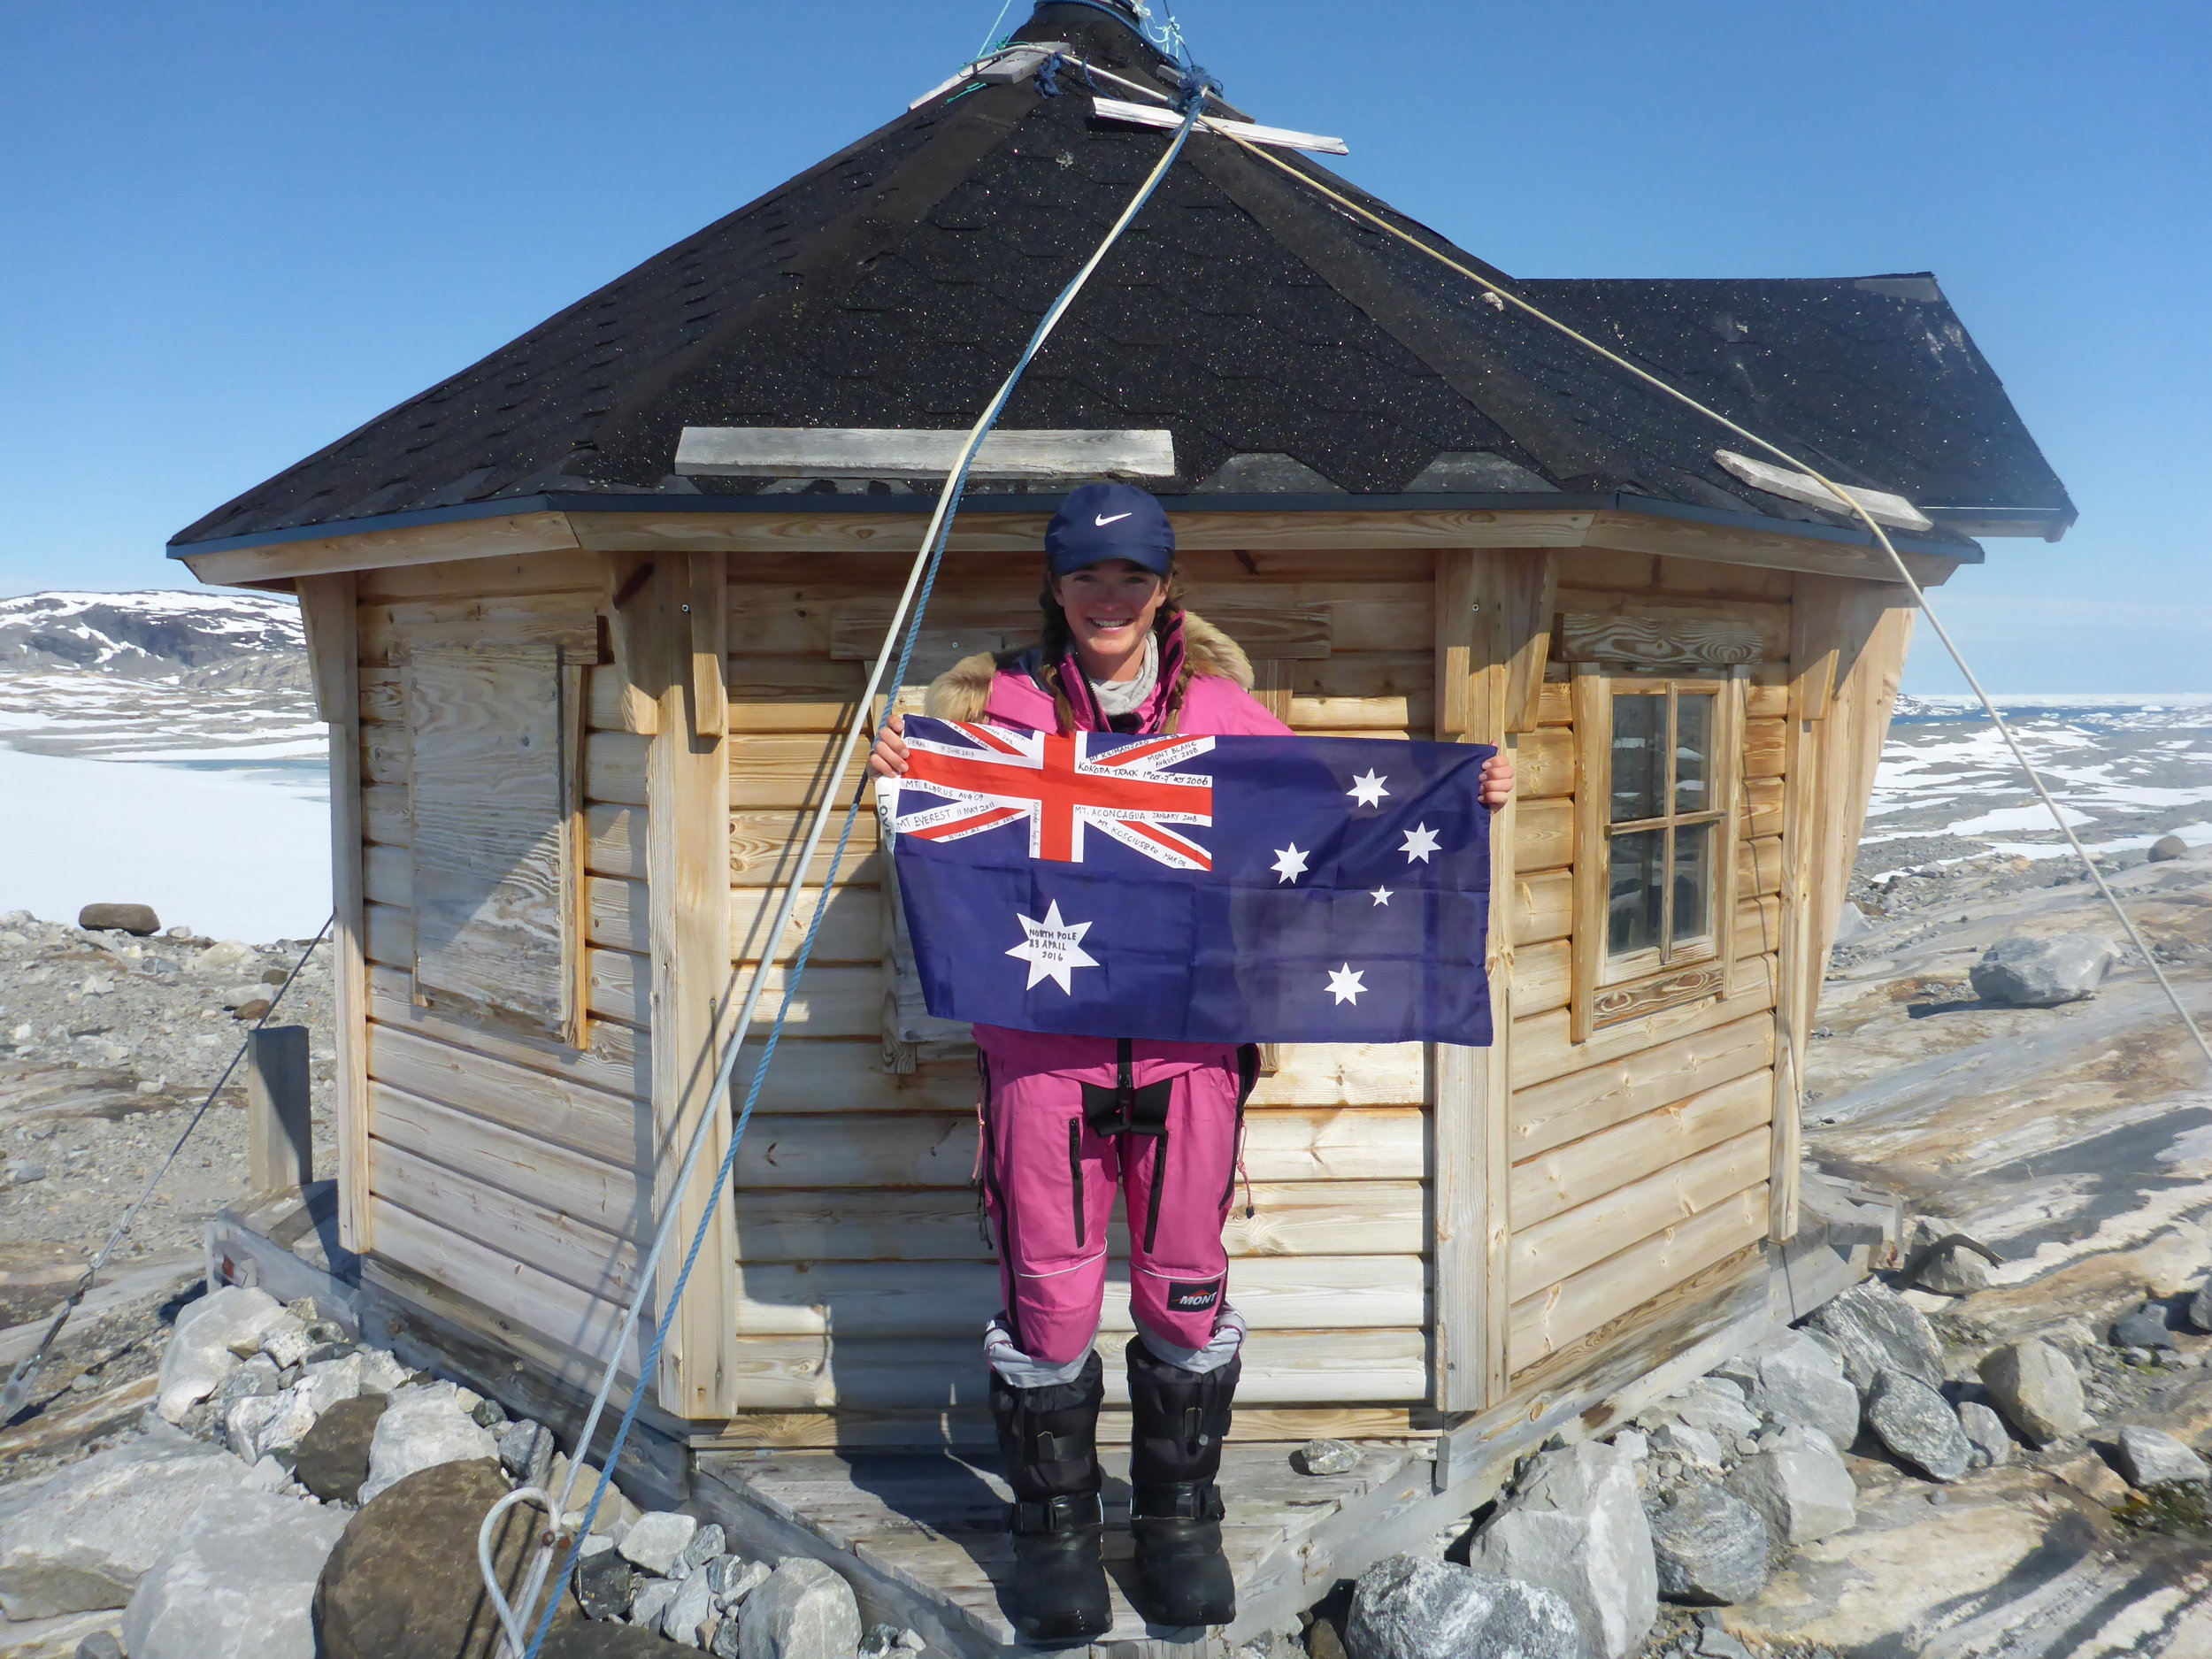 Teen polar explorer Jade Hameister after becoming the youngest woman in history to traverse the Greenland icecap, the day before her sixteenth birthday.